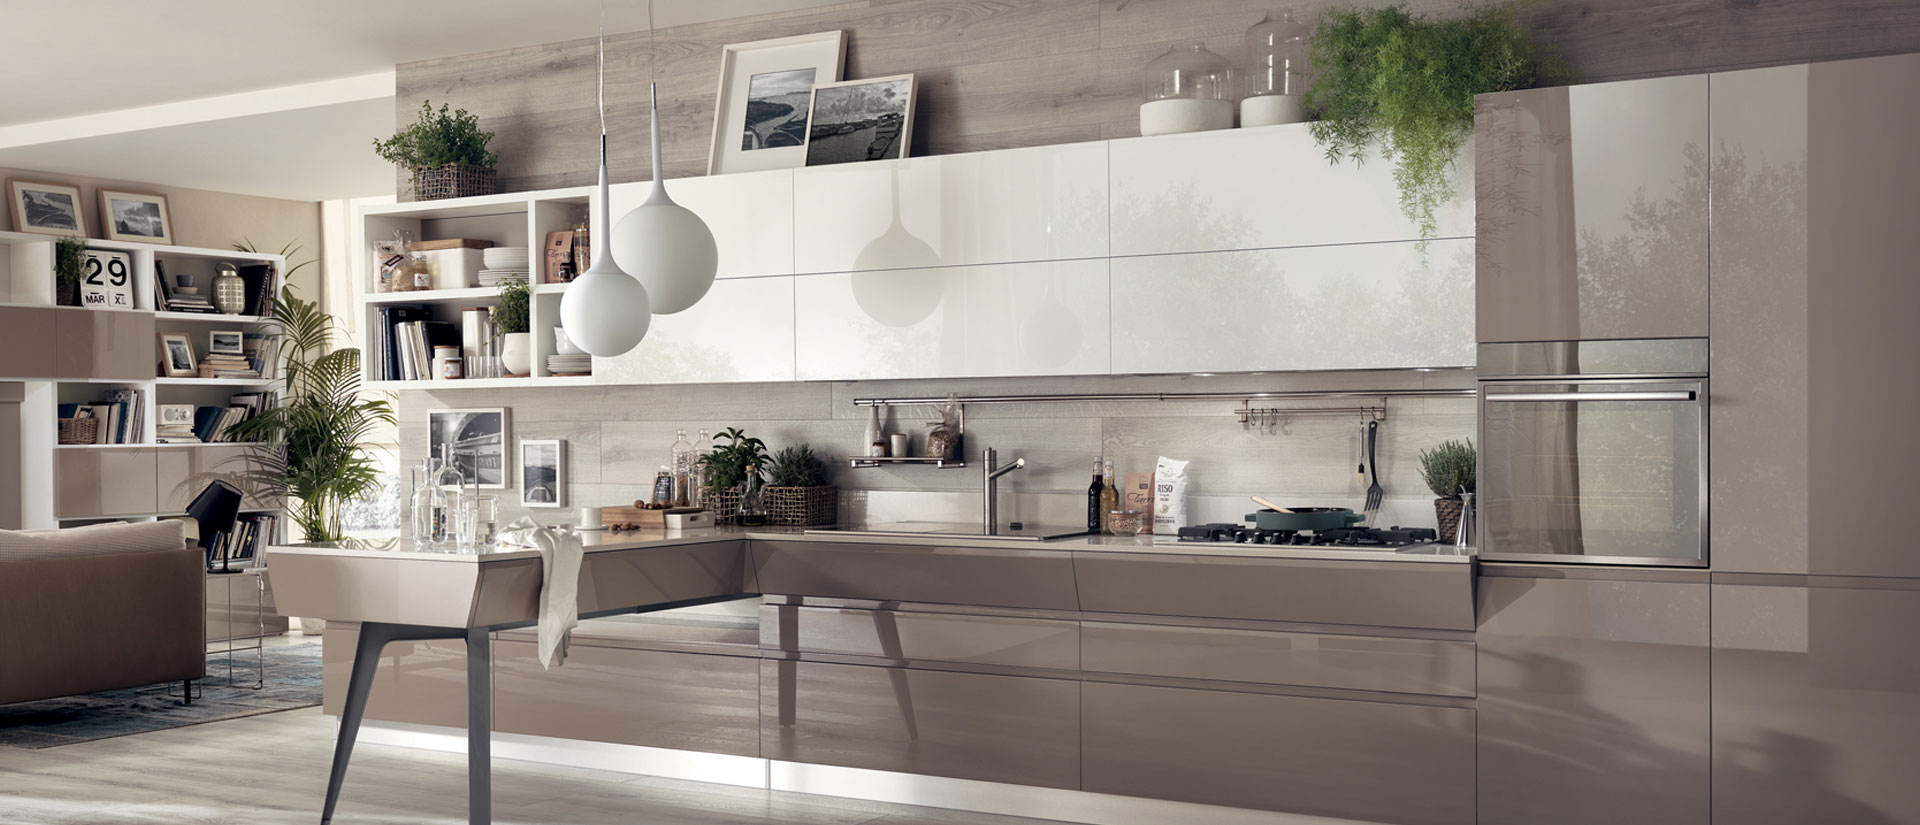 Motus casadesign for Arredo cucina design